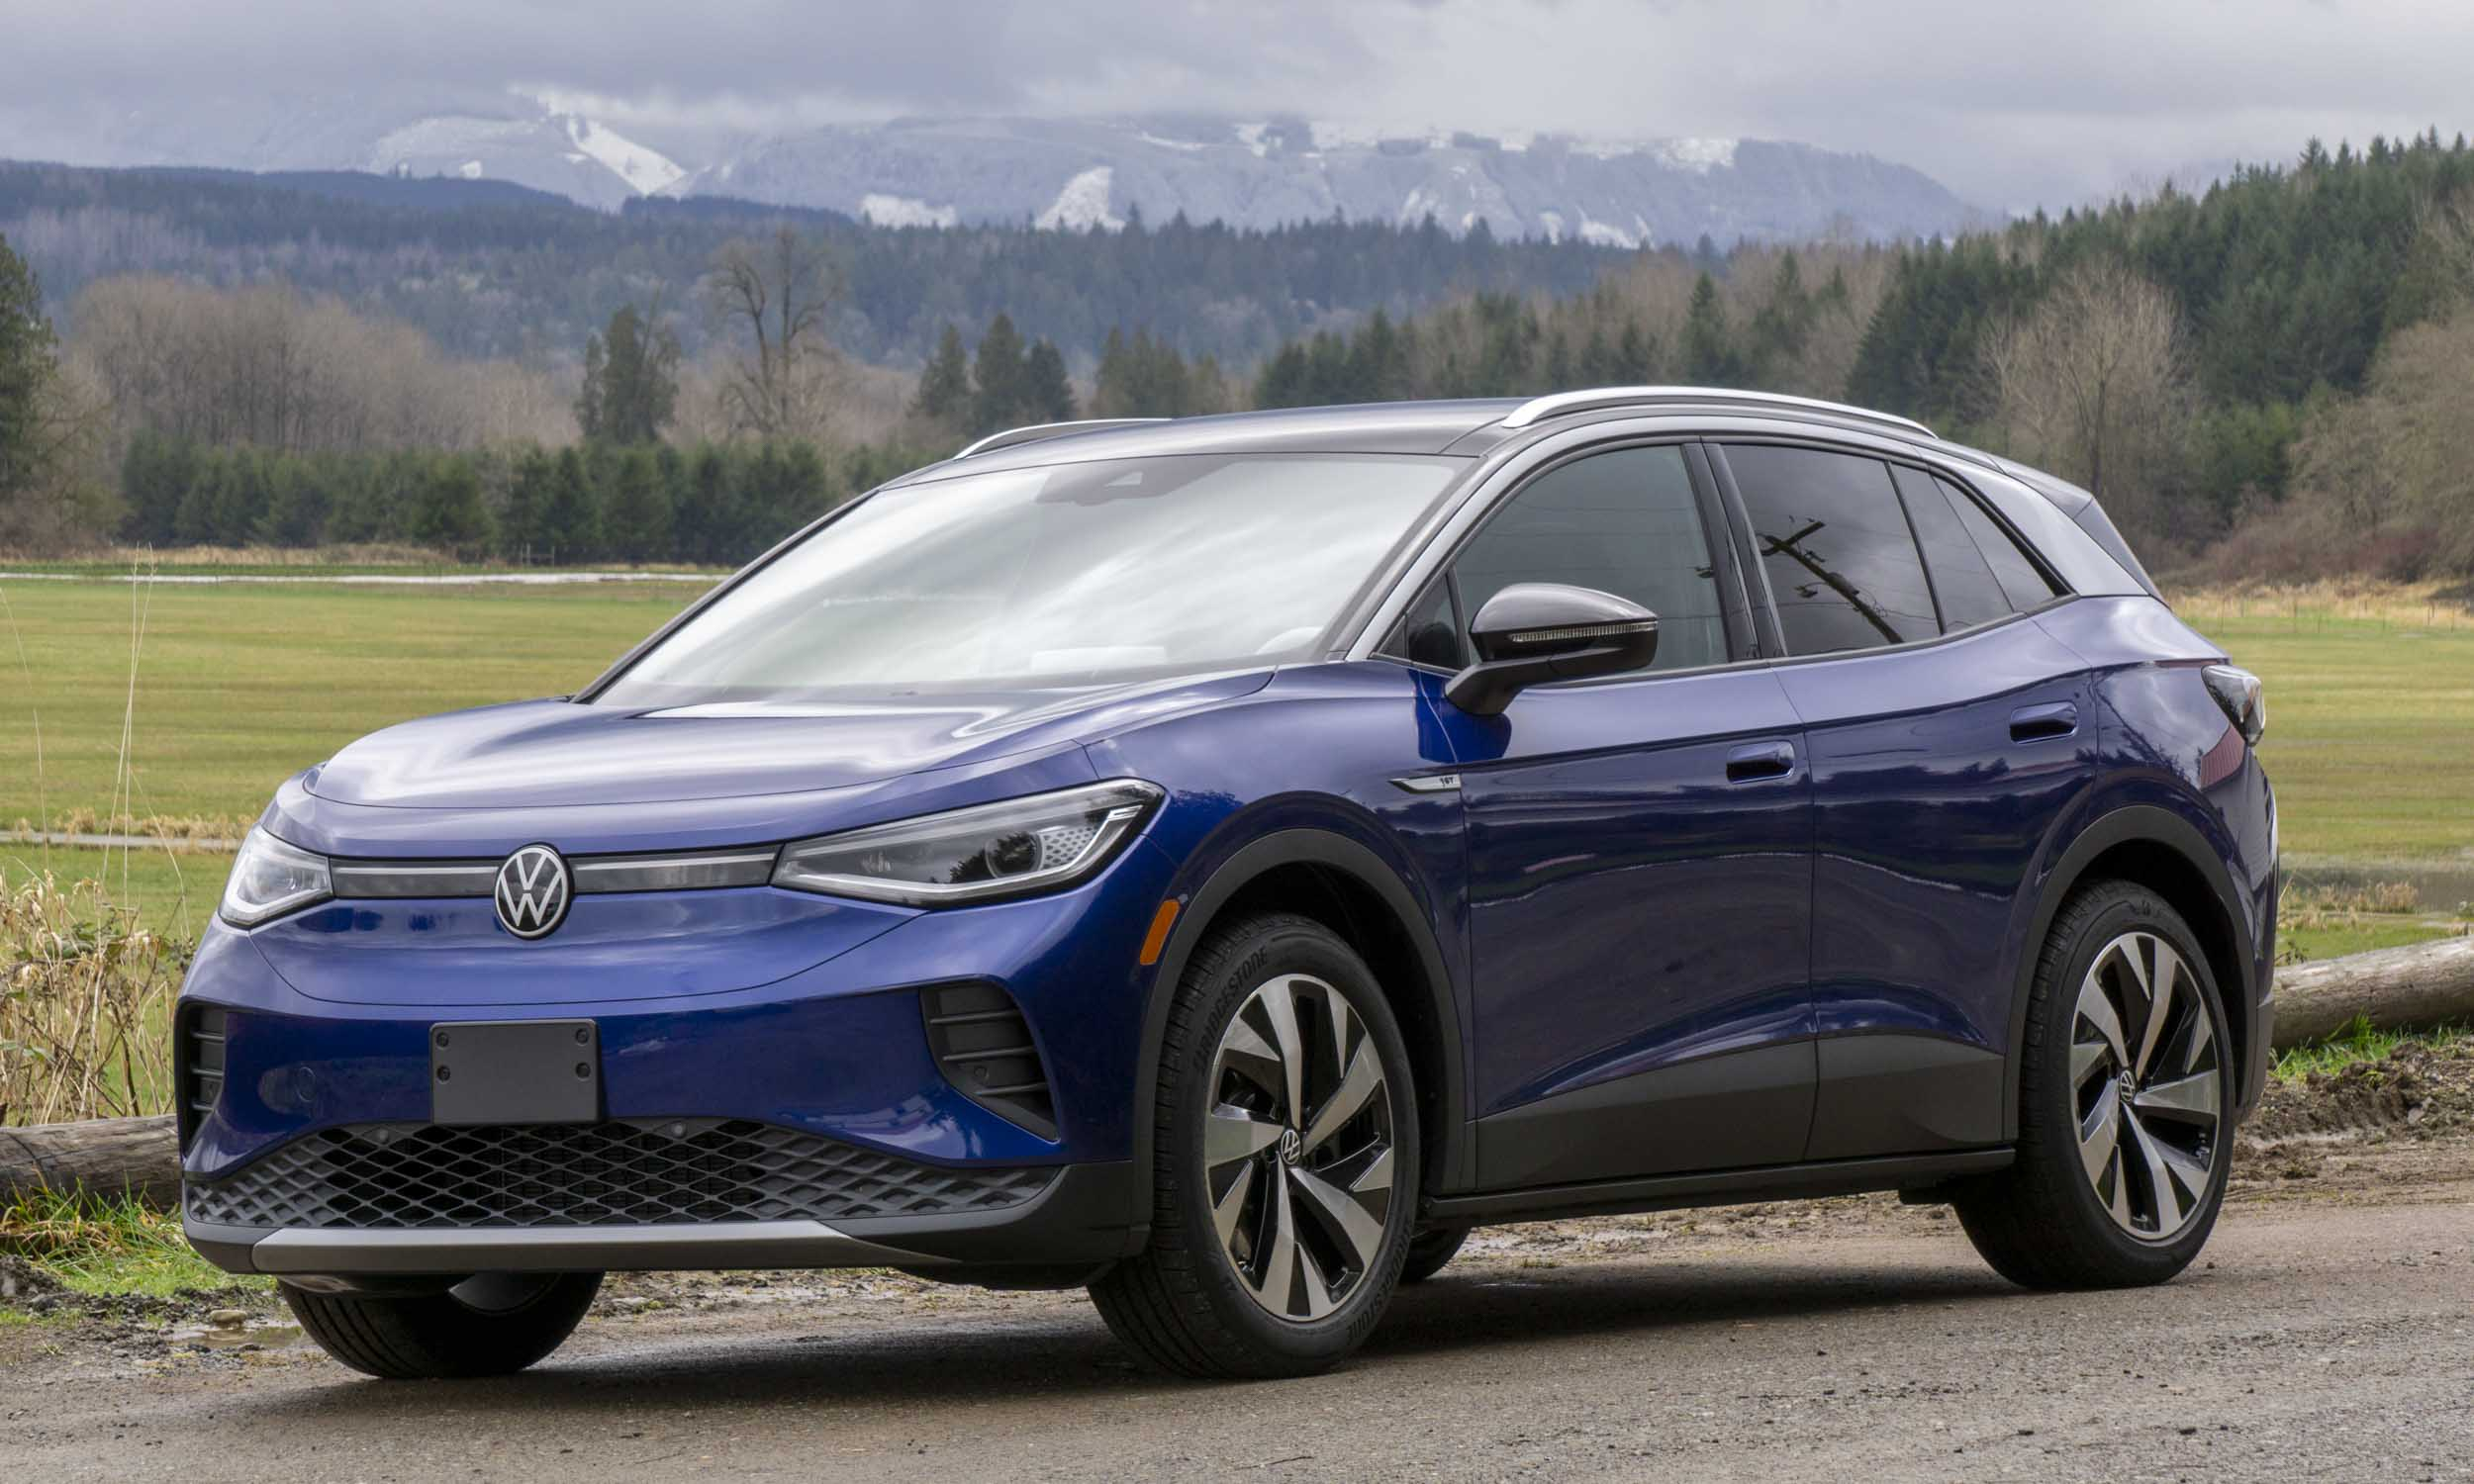 2021 Volkswagen ID.4: First Drive Review